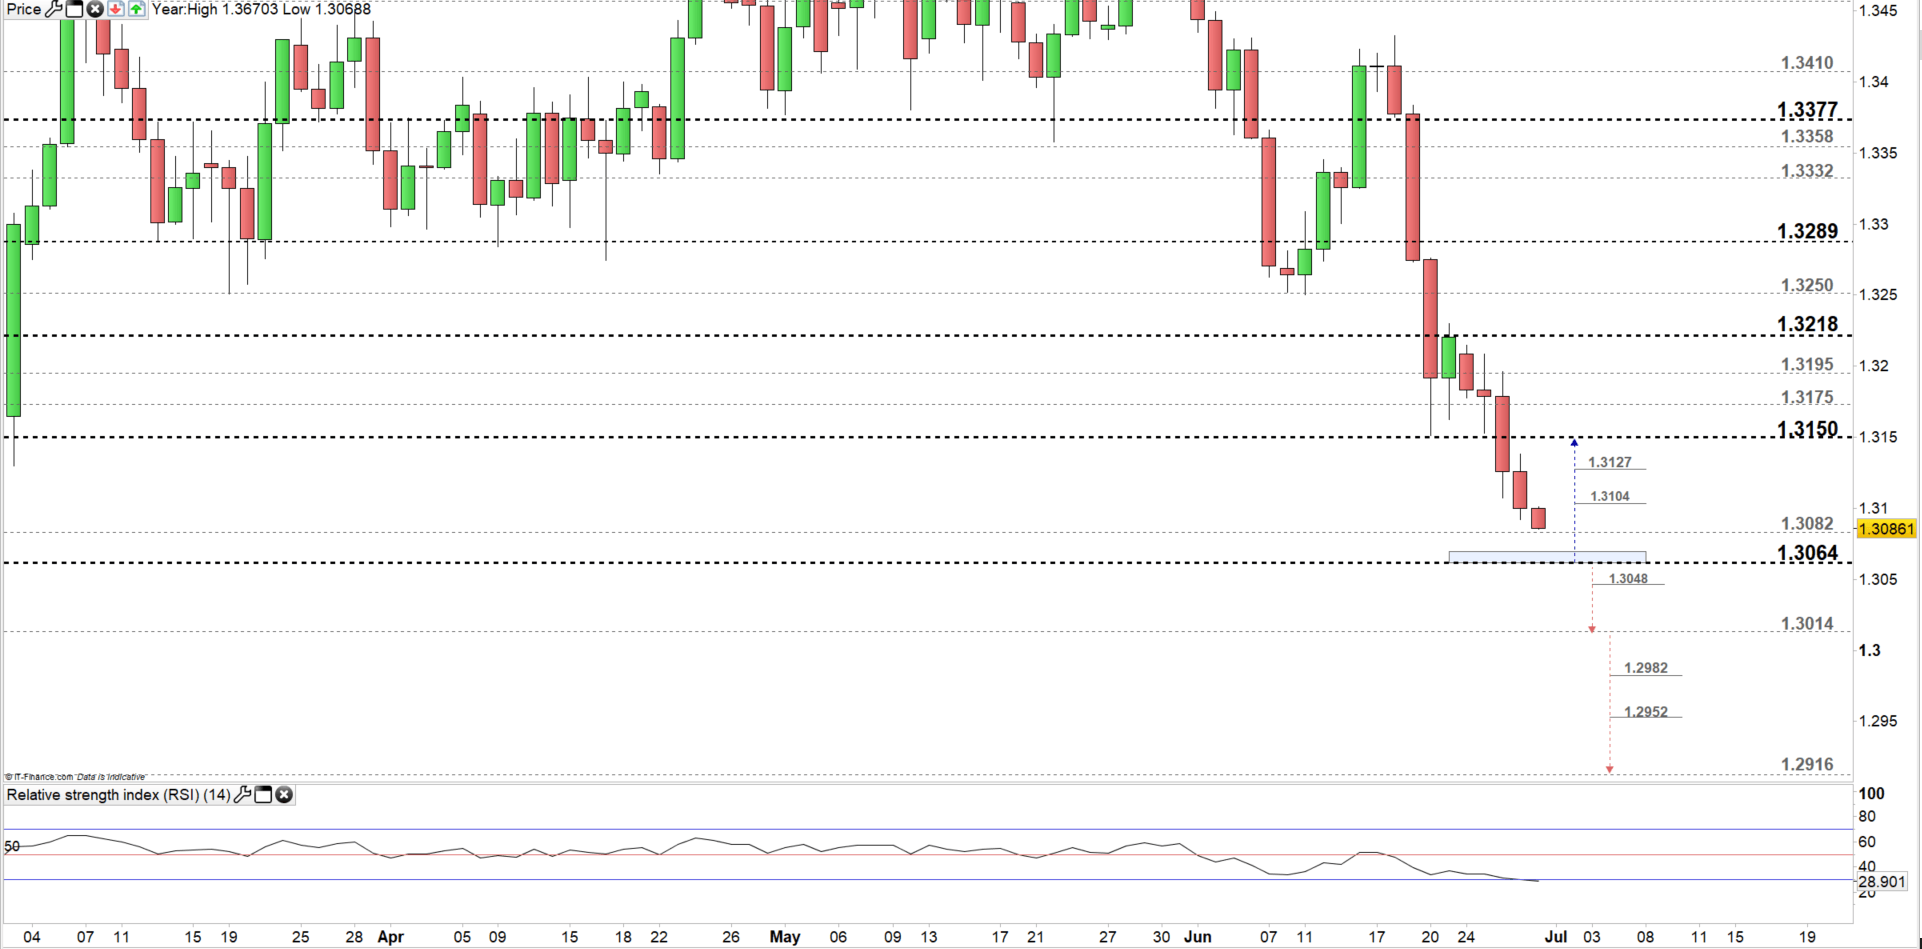 Canadian Dollar Analysis: USD/CAD Why the Sellers May Need to Watch This Price